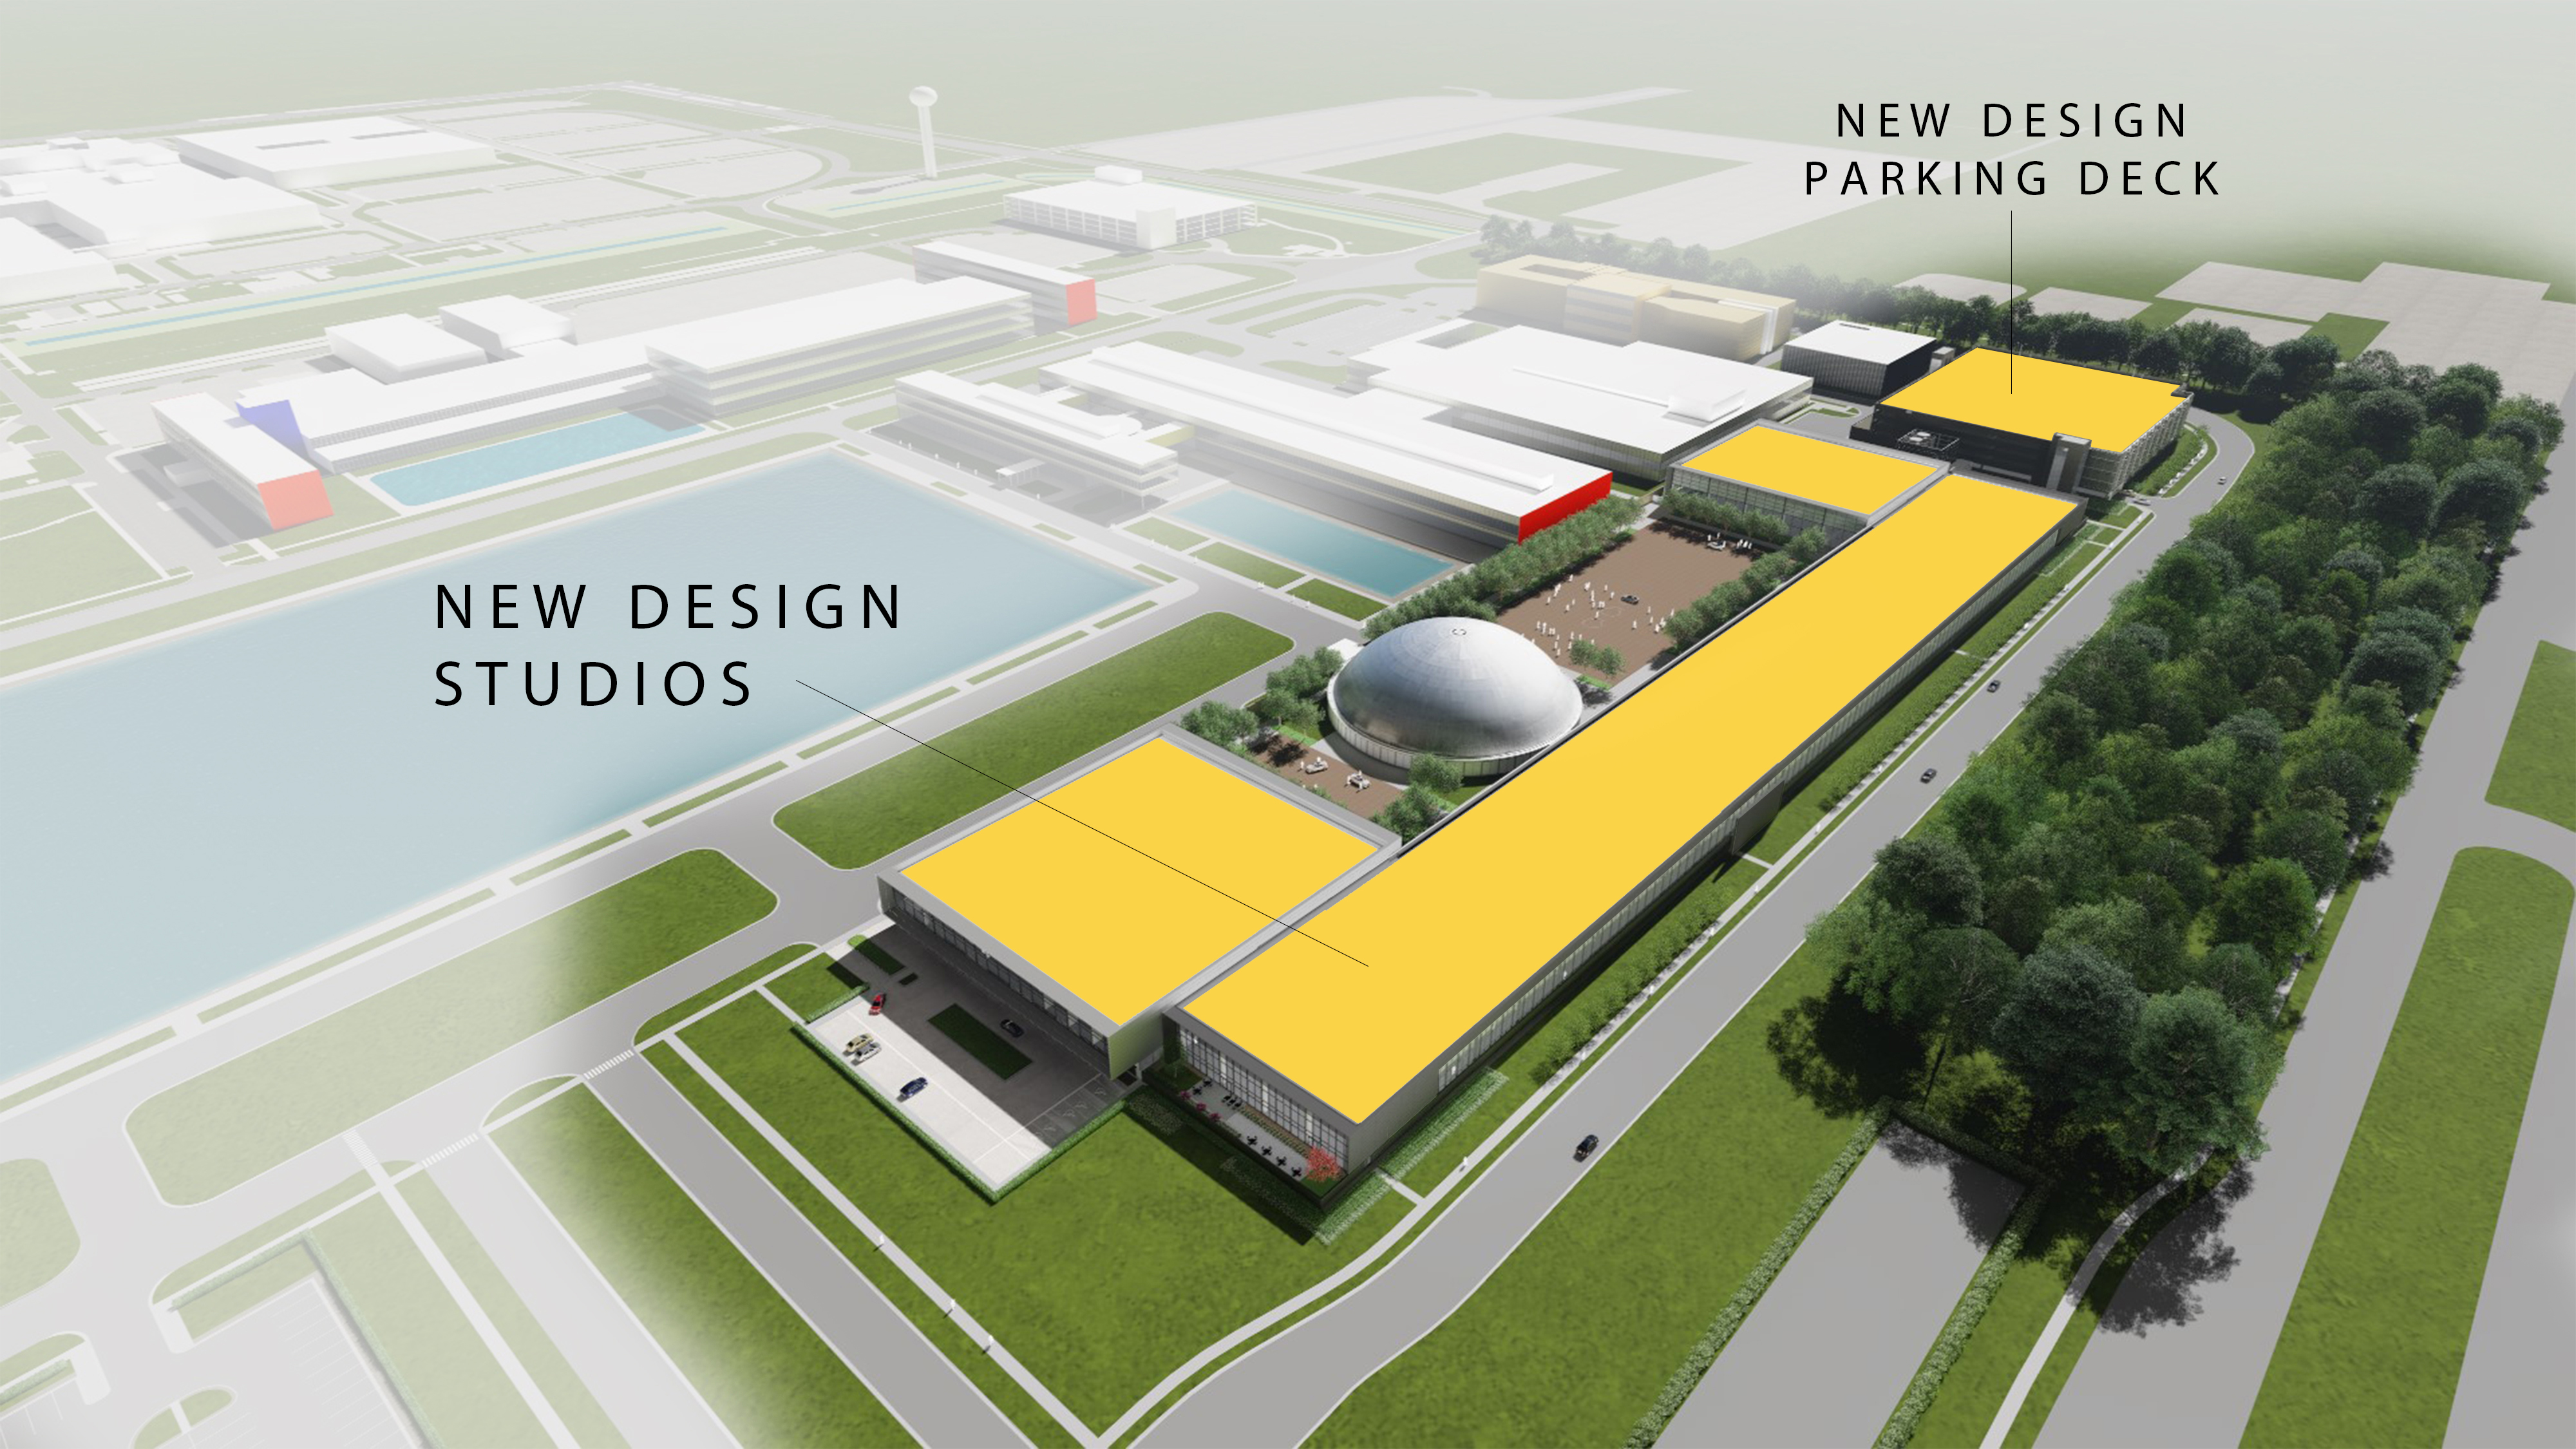 Gm Design Expansion To Double Studio Space And Complete Global Technical Center Transformation